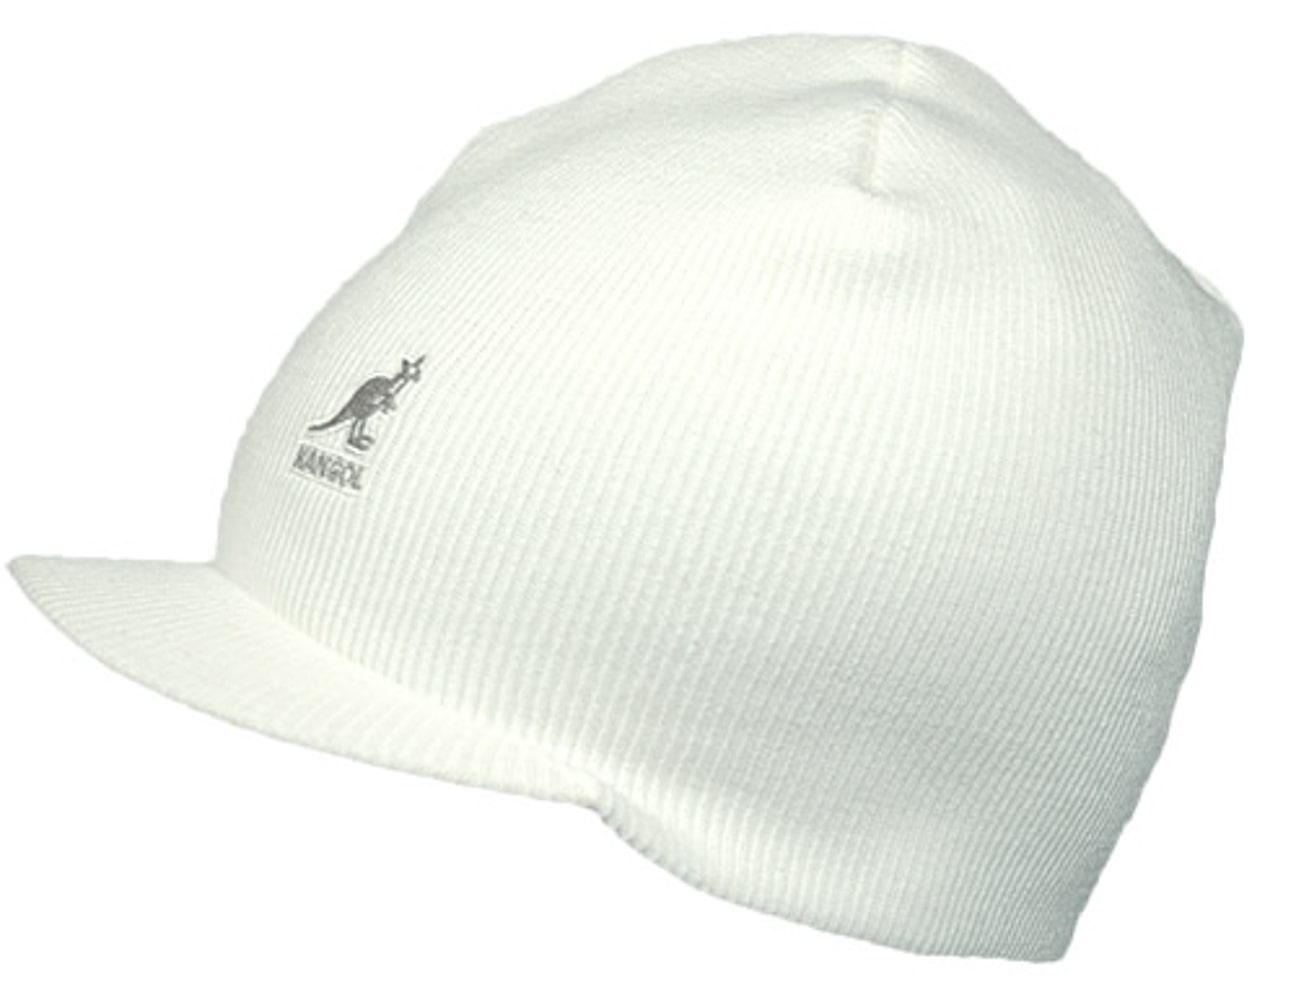 ... black 1 · Kangol Acrylic Cuffless Pull On with Peak - white 1 deb6688944f8